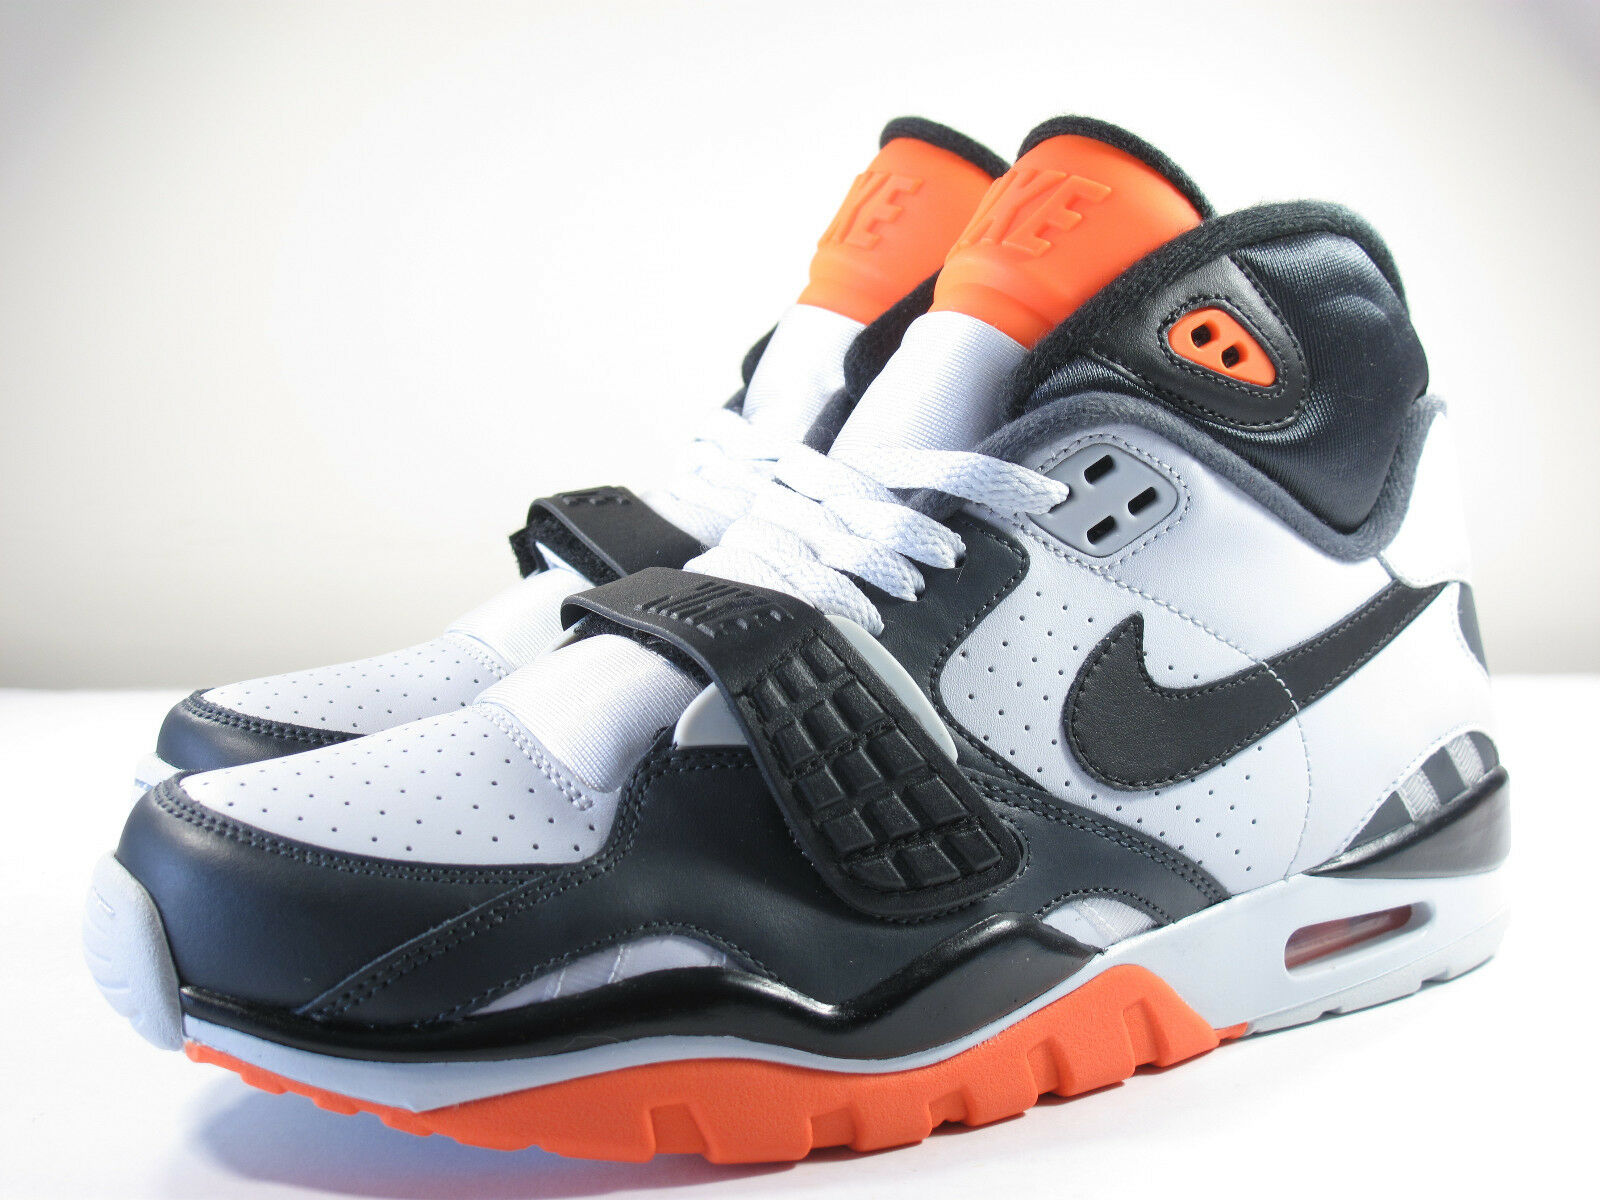 Ds nike 2010 stichprobe air trainer sc orange insgesamt orange sc 9. super bowl 1 kraft max 90 180 0d210b